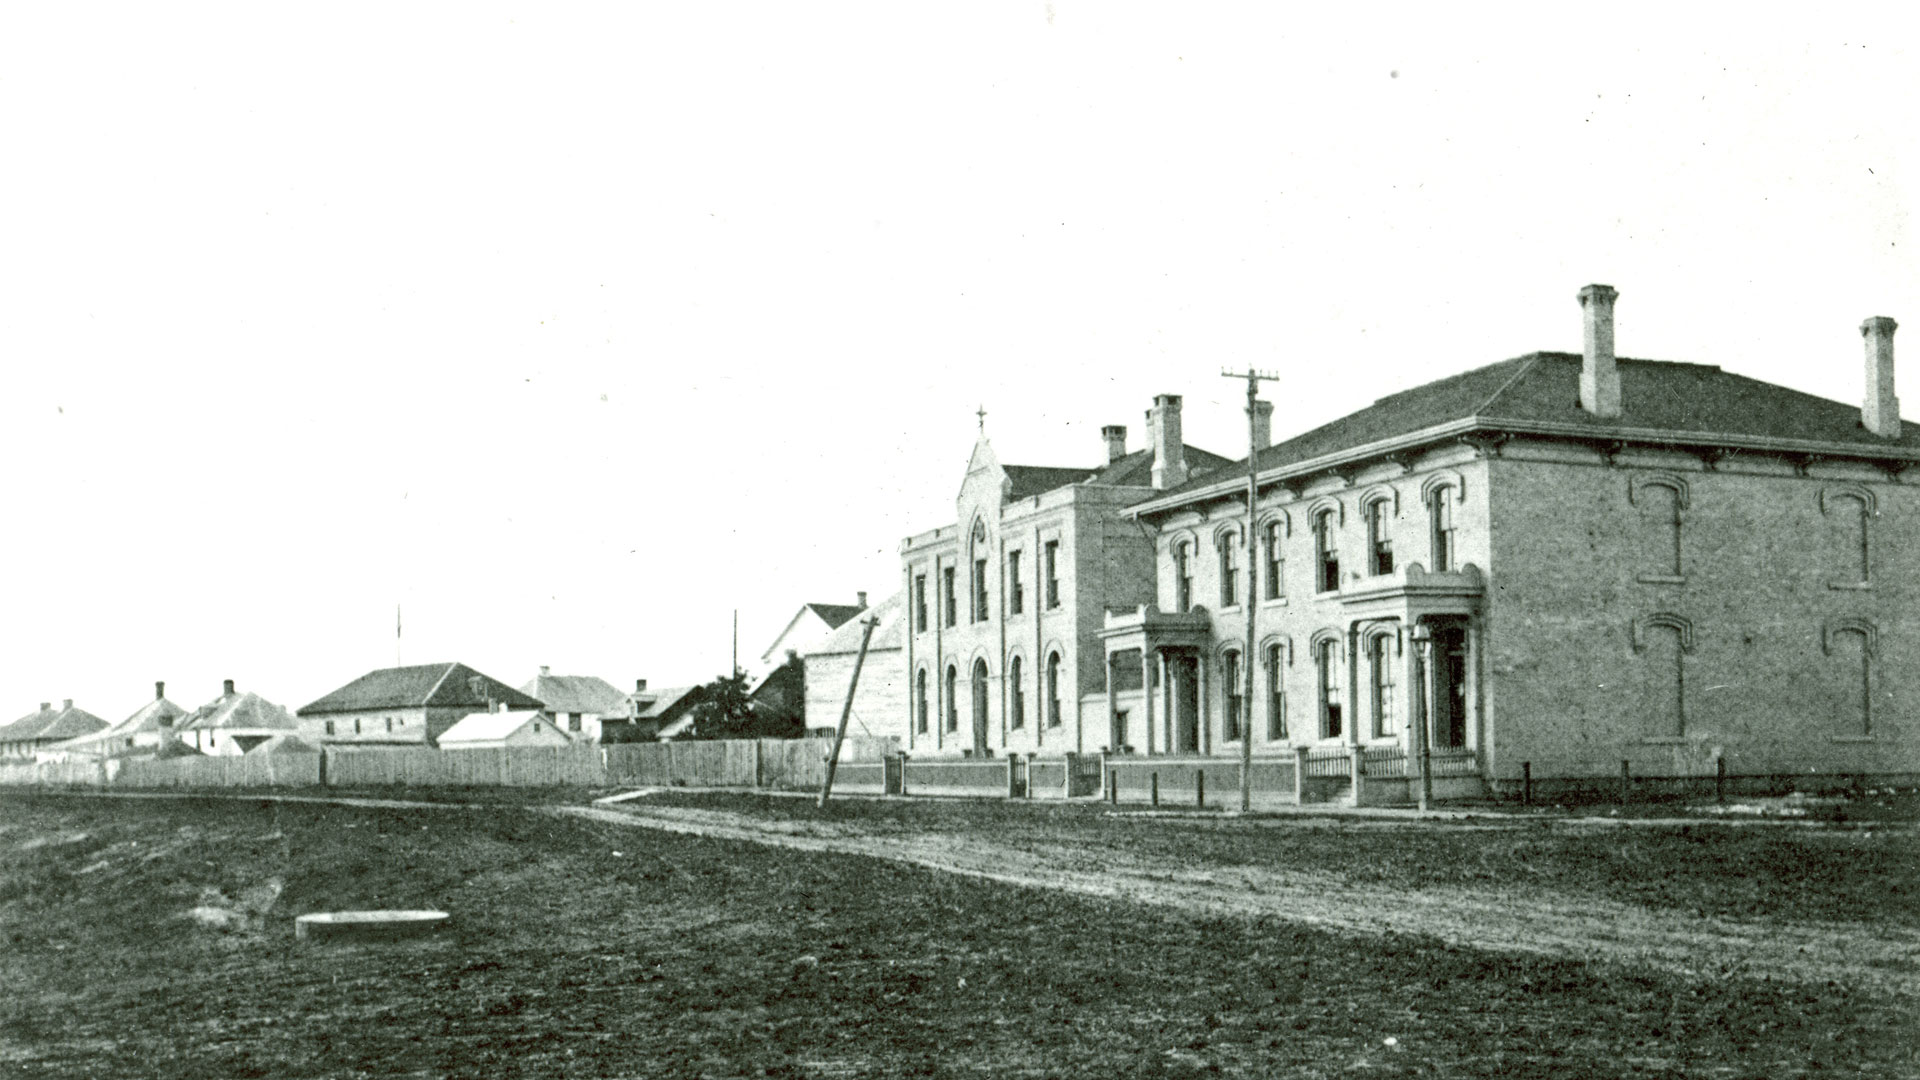 Site of the Bank of Montreal branch at the corner of Main Street and Broadway, Winnipeg, Manitoba, 1879.